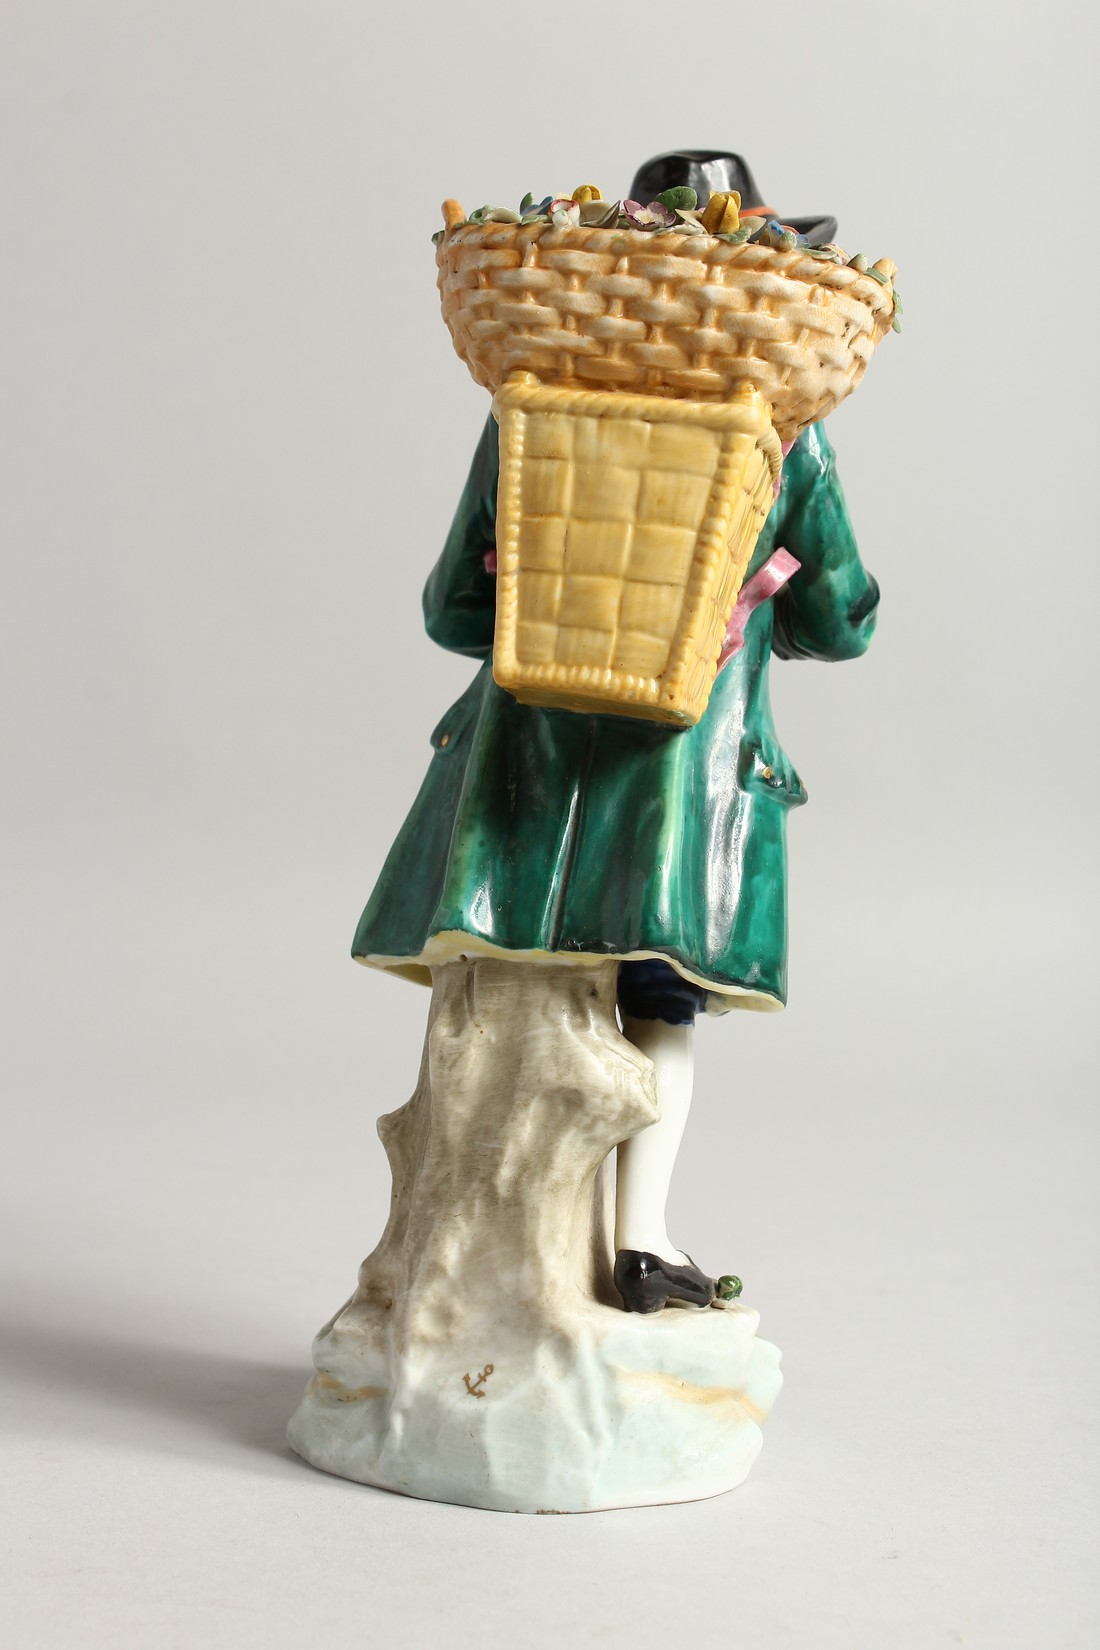 A SAMSON CHELSEA DERRY PORCELAIN FIGURE of a man, a basket of flowers on his back 9ins high. - Image 3 of 6